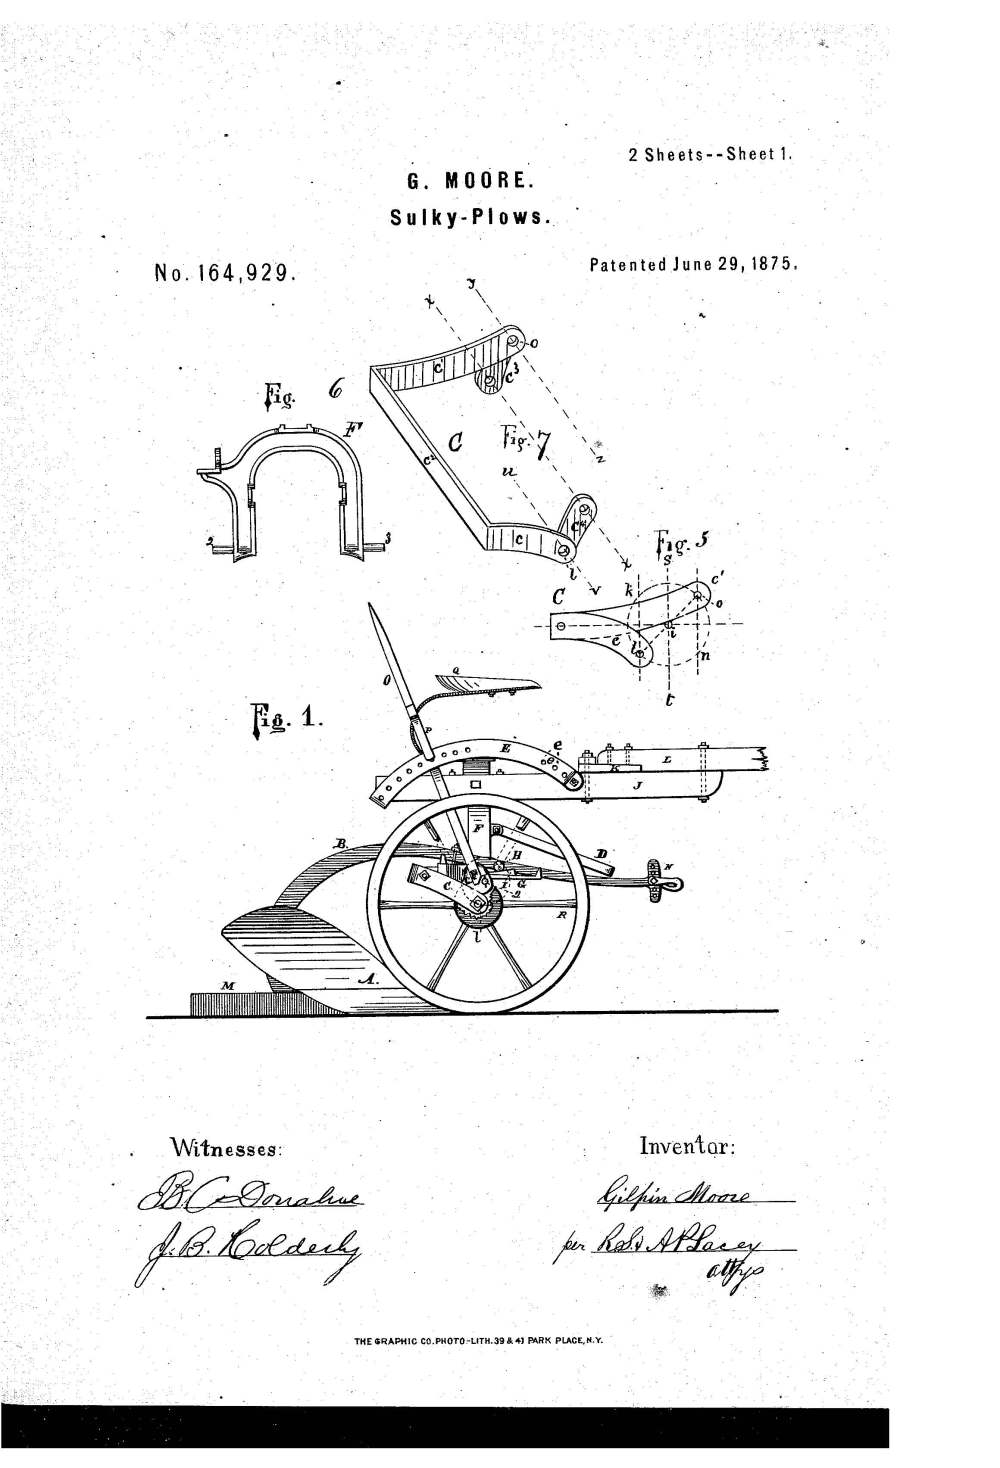 medium resolution of john deere s history began in 1837 in grand detour illinois when john deere created a polished steel plow that allowed for farmers to cut clean furrows in